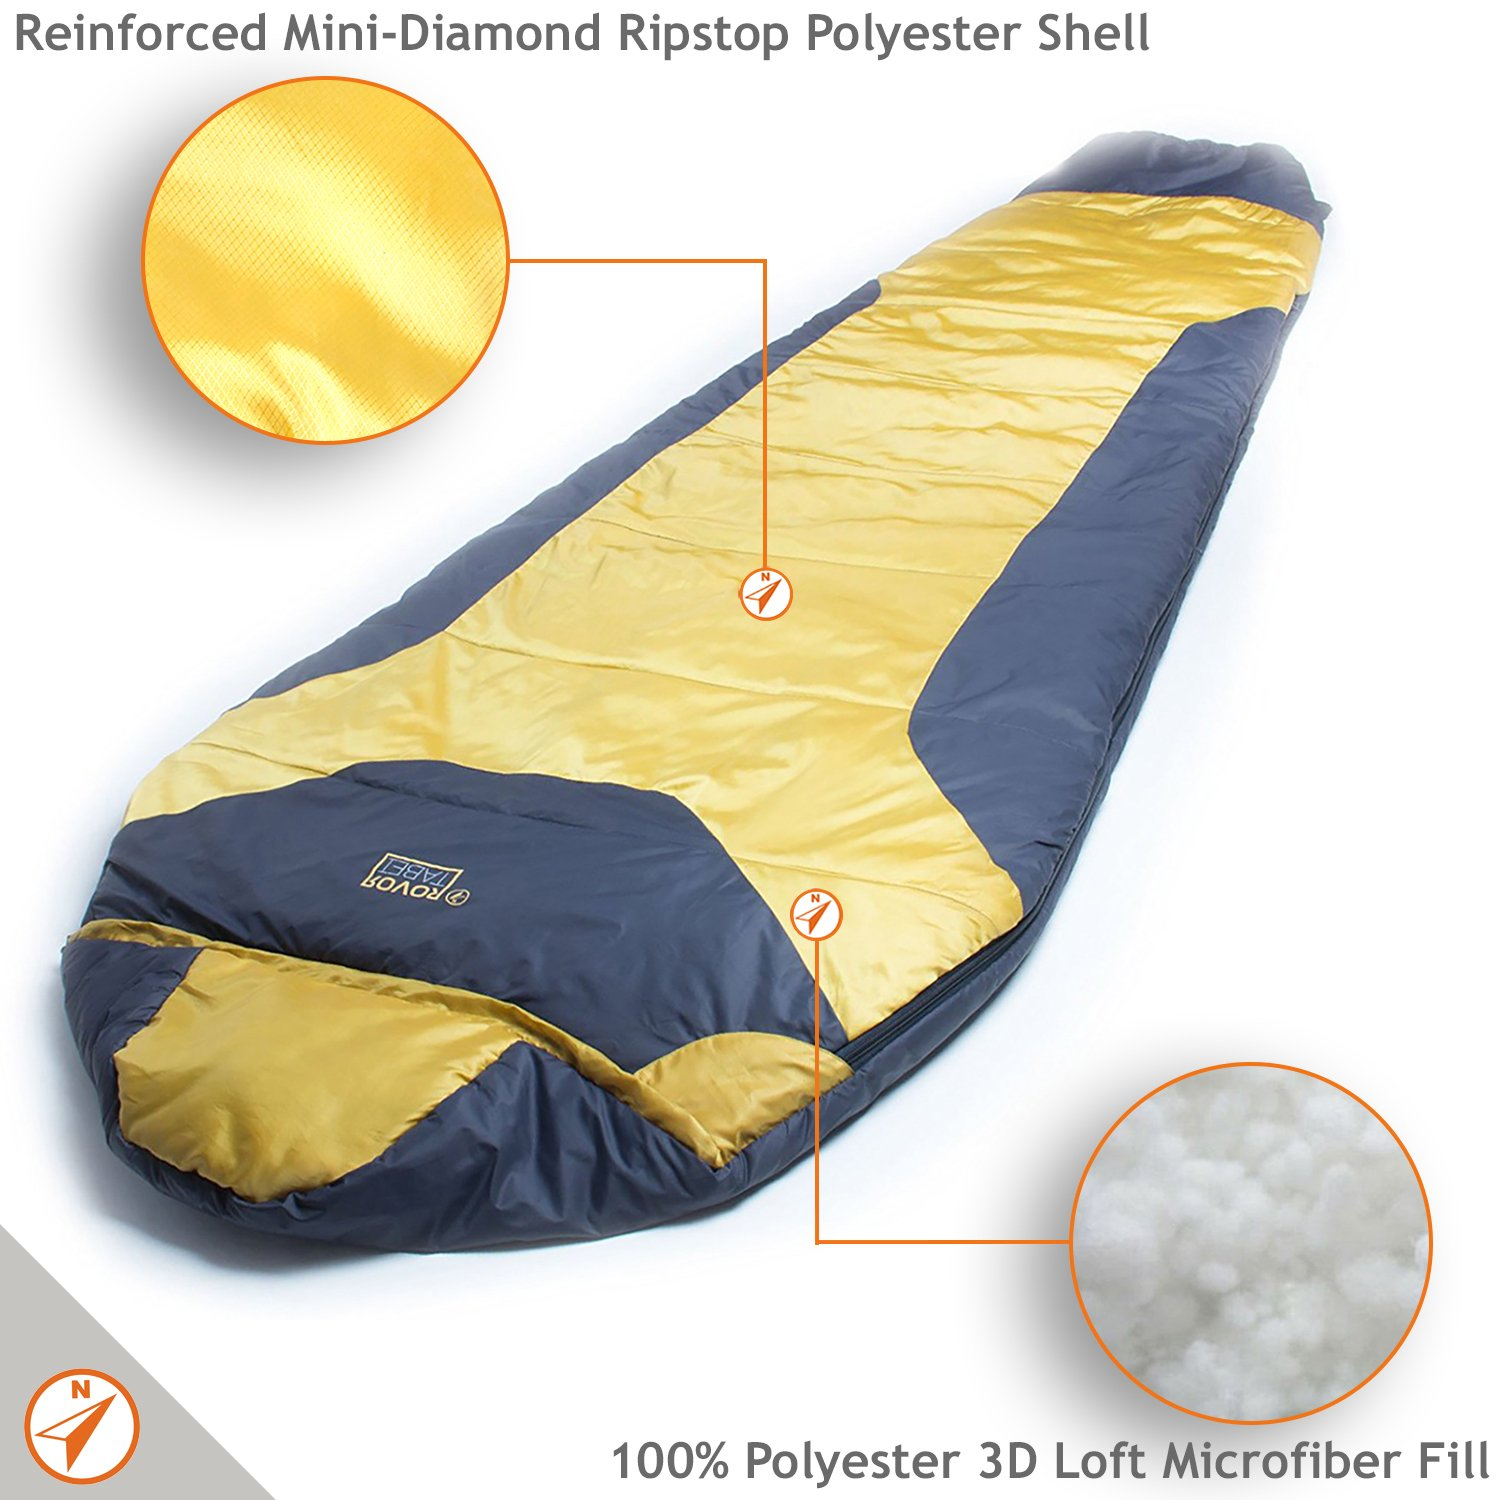 ROVOR Tabei 52 Degree Mummy Backpacking Sleeping Bag with Included Stuff Sack The Tabei Sleeping Bags for Adults Have a 52 Degree Comfort Rating